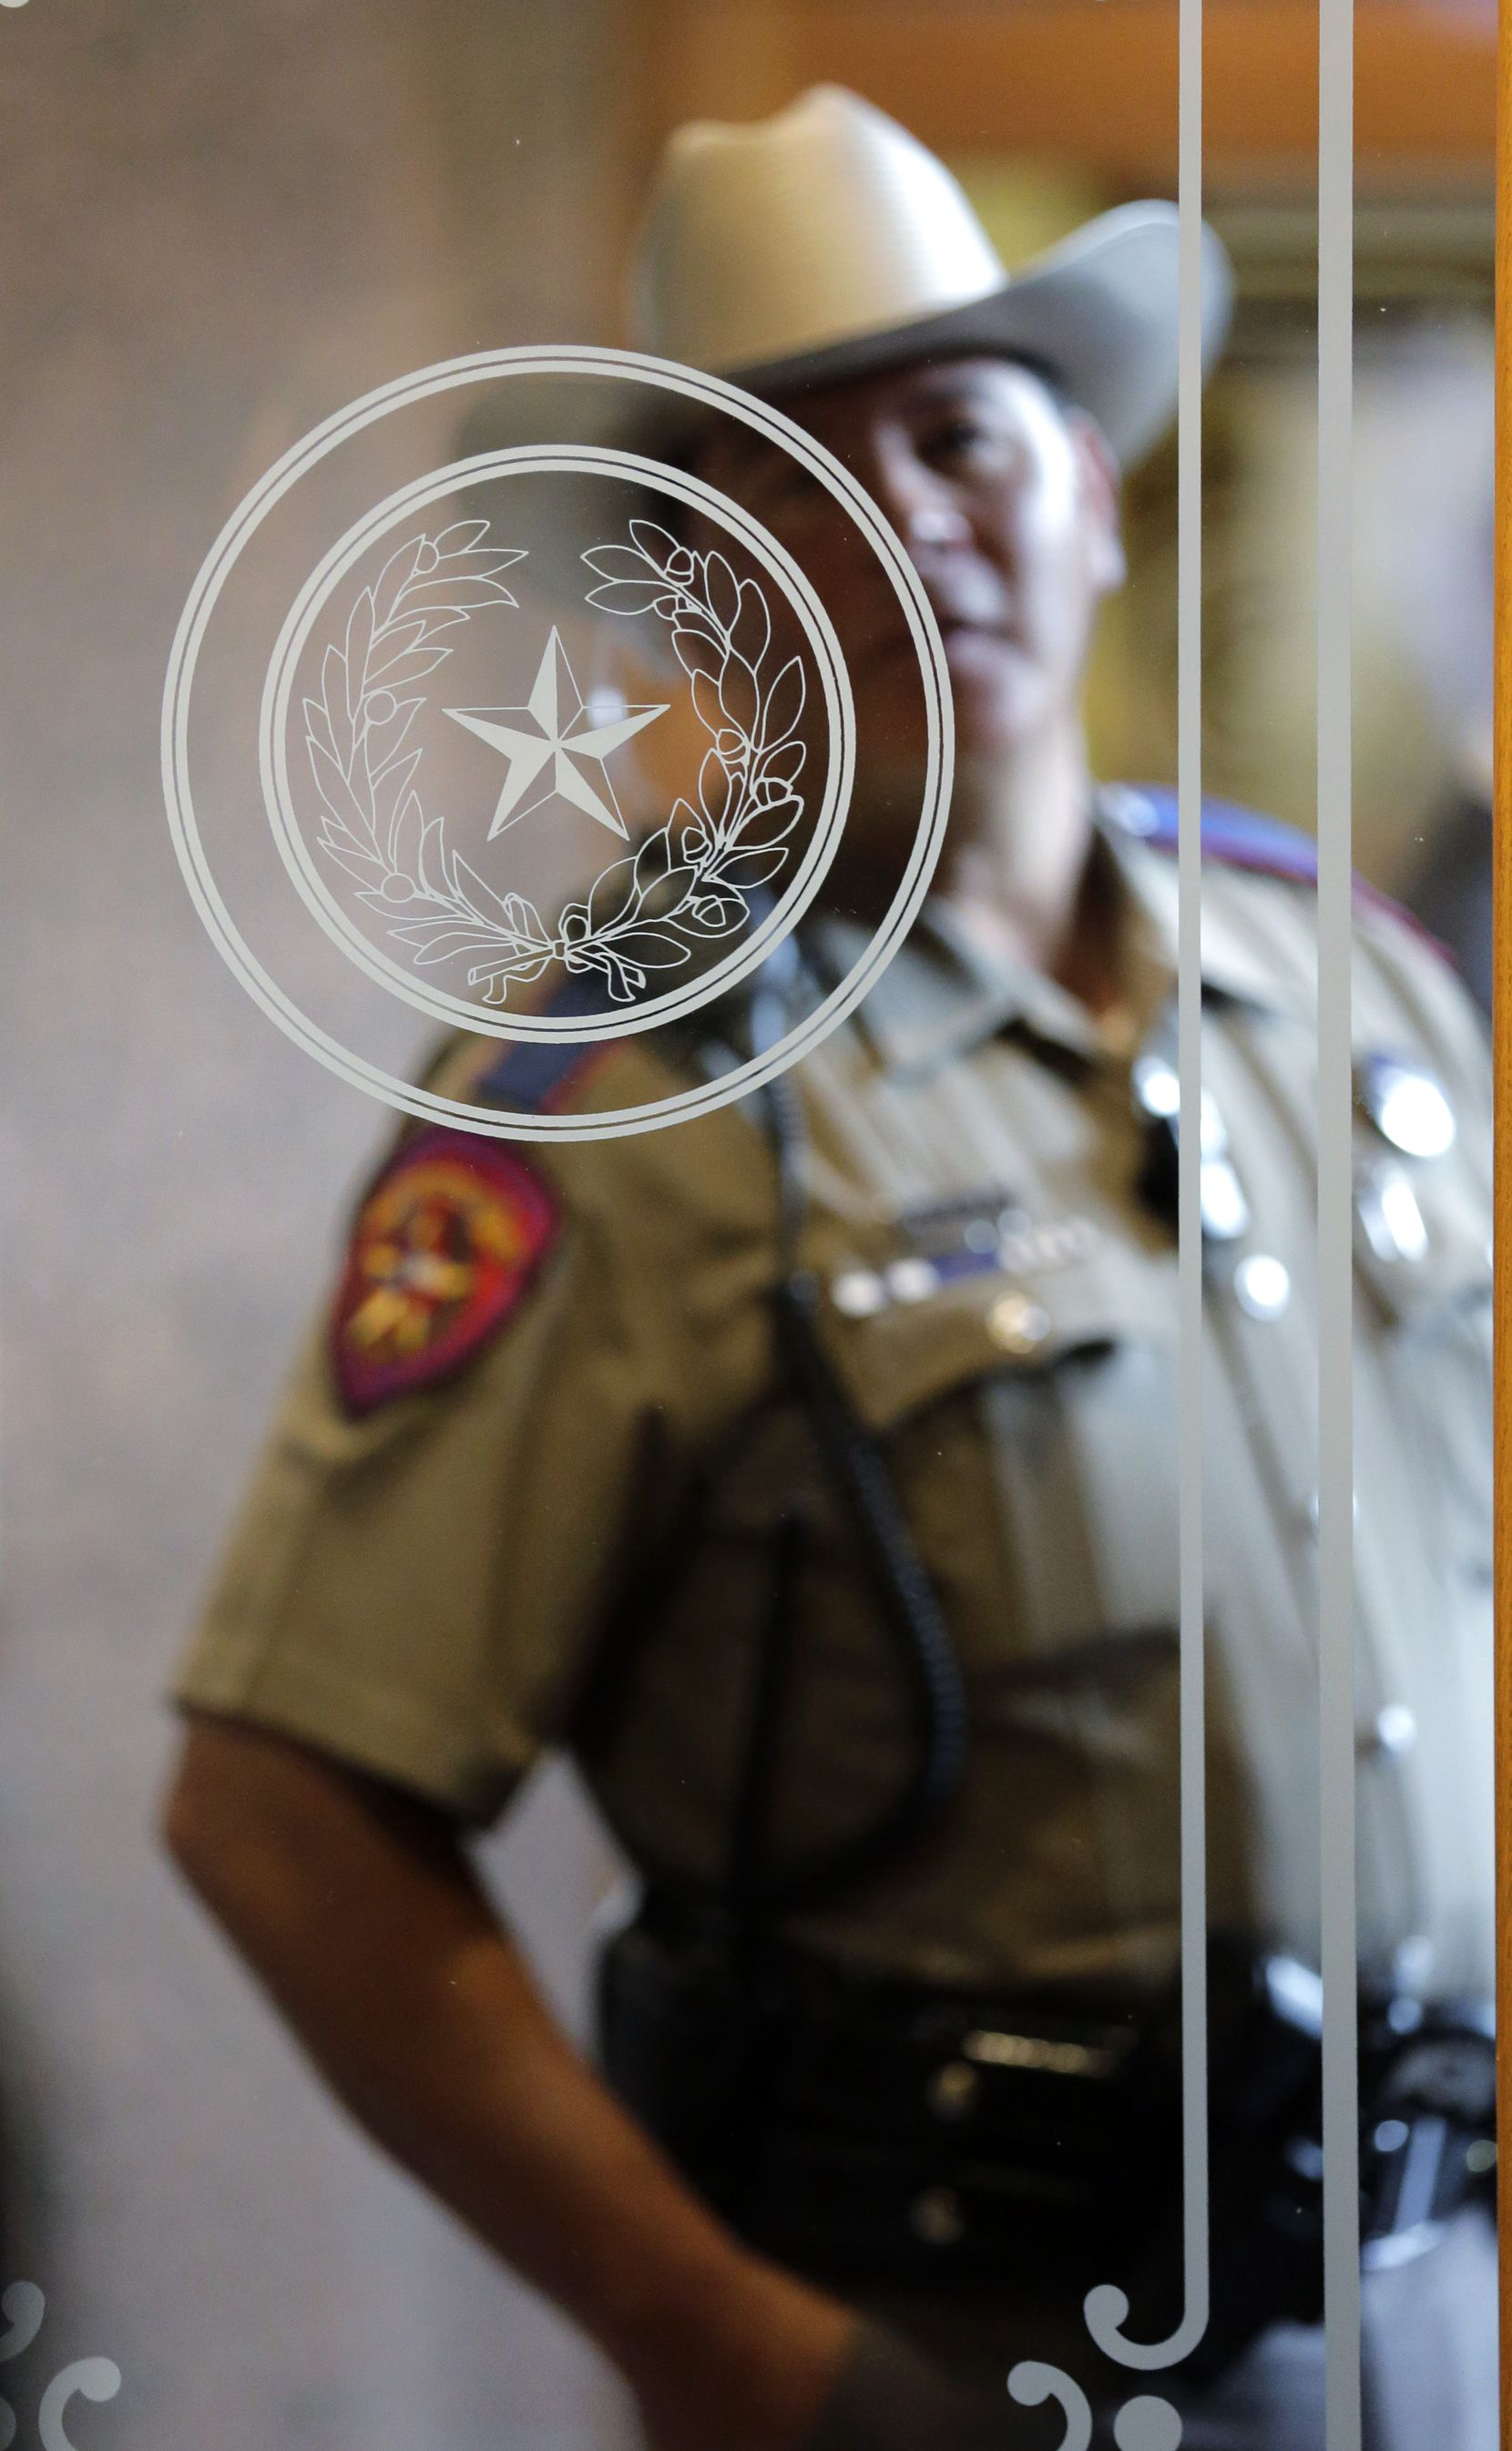 A Texas state trooper stands outside of a hearing where lawmakers discuss whether to legalize concealed handguns on college campuses and open carry everywhere else last month.